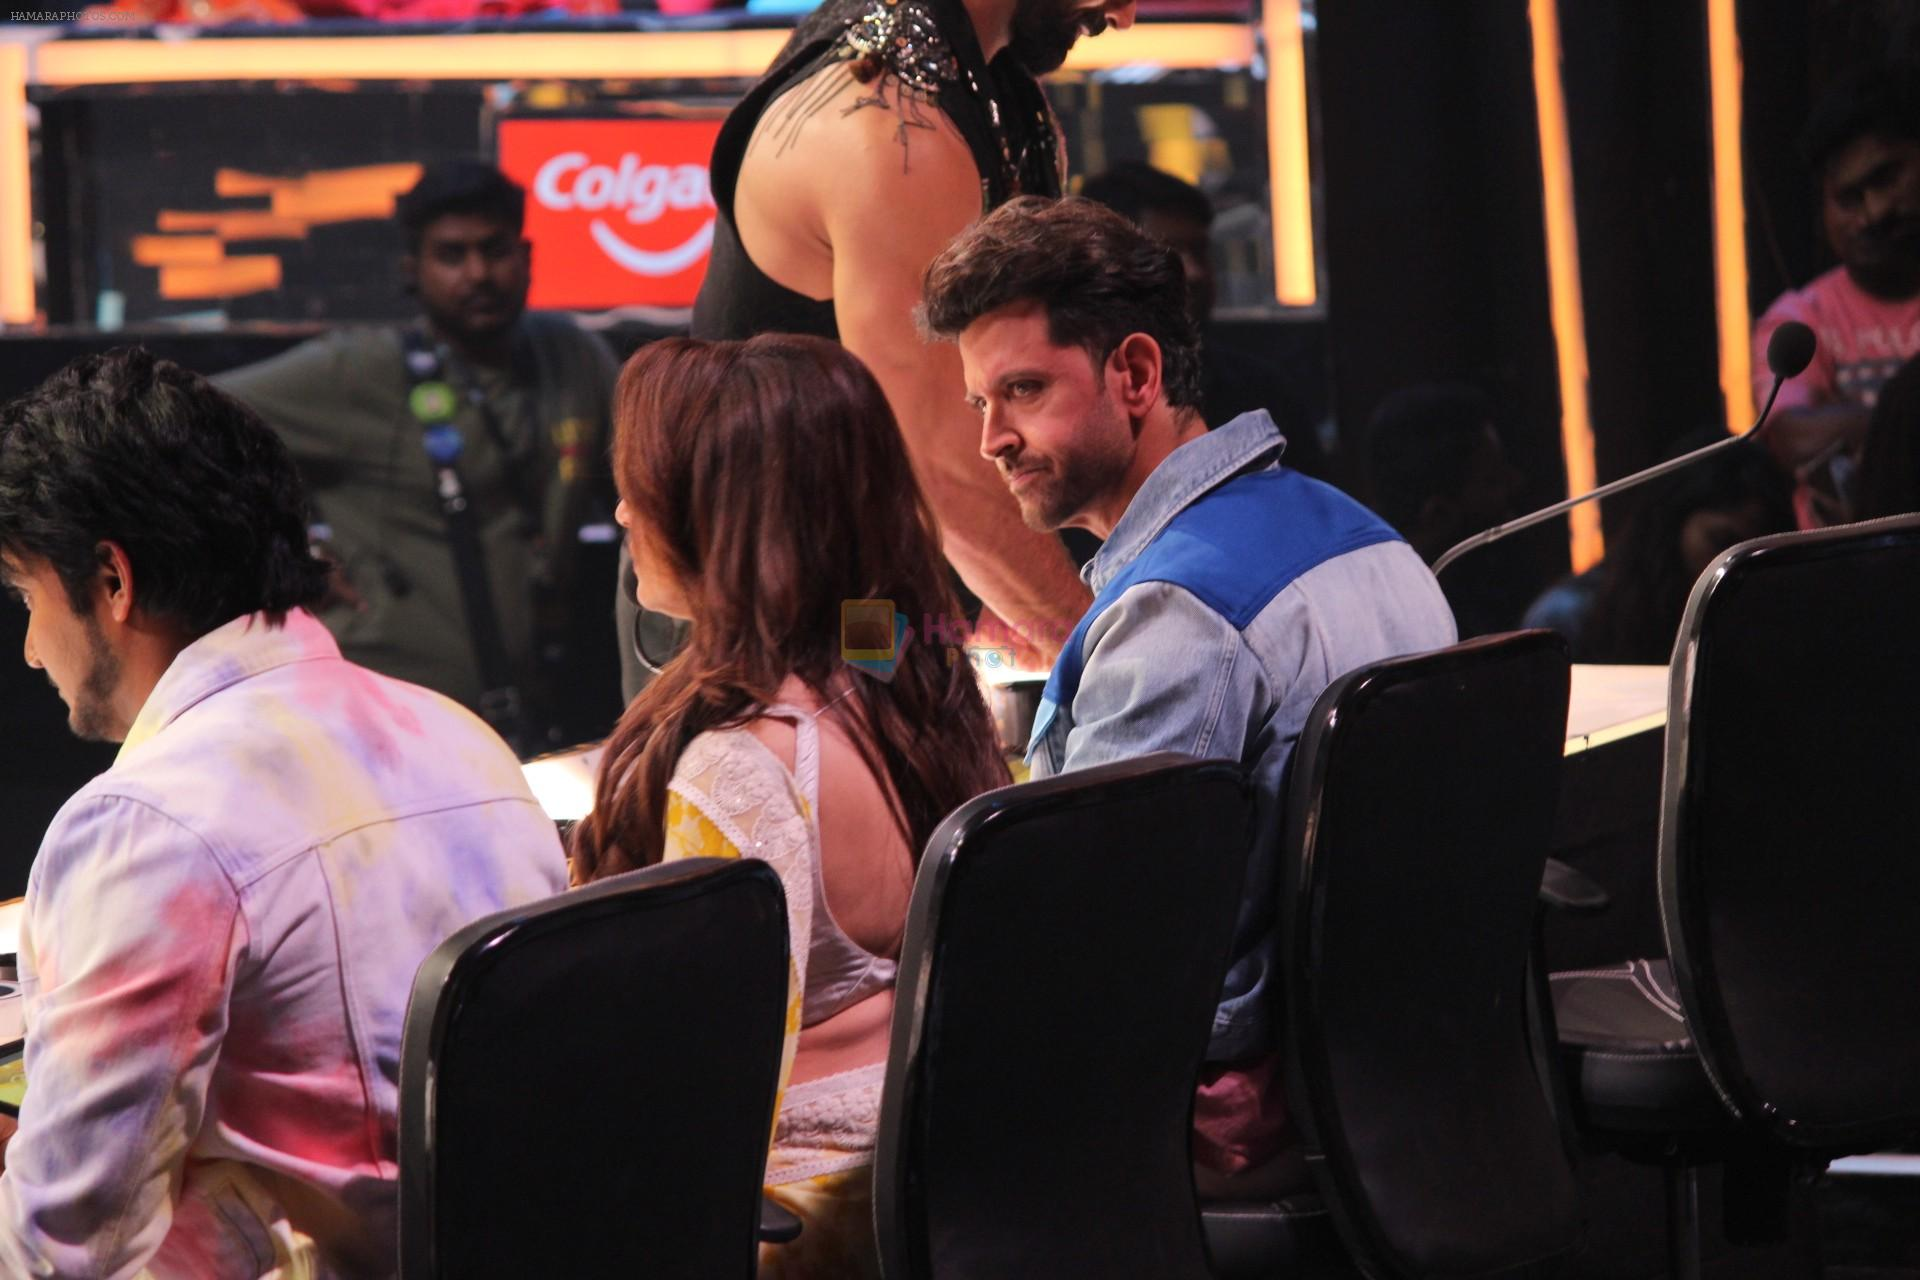 Hrithik Roshan on the sets of colors Dance Deewane in filmcity on 2nd July 2019